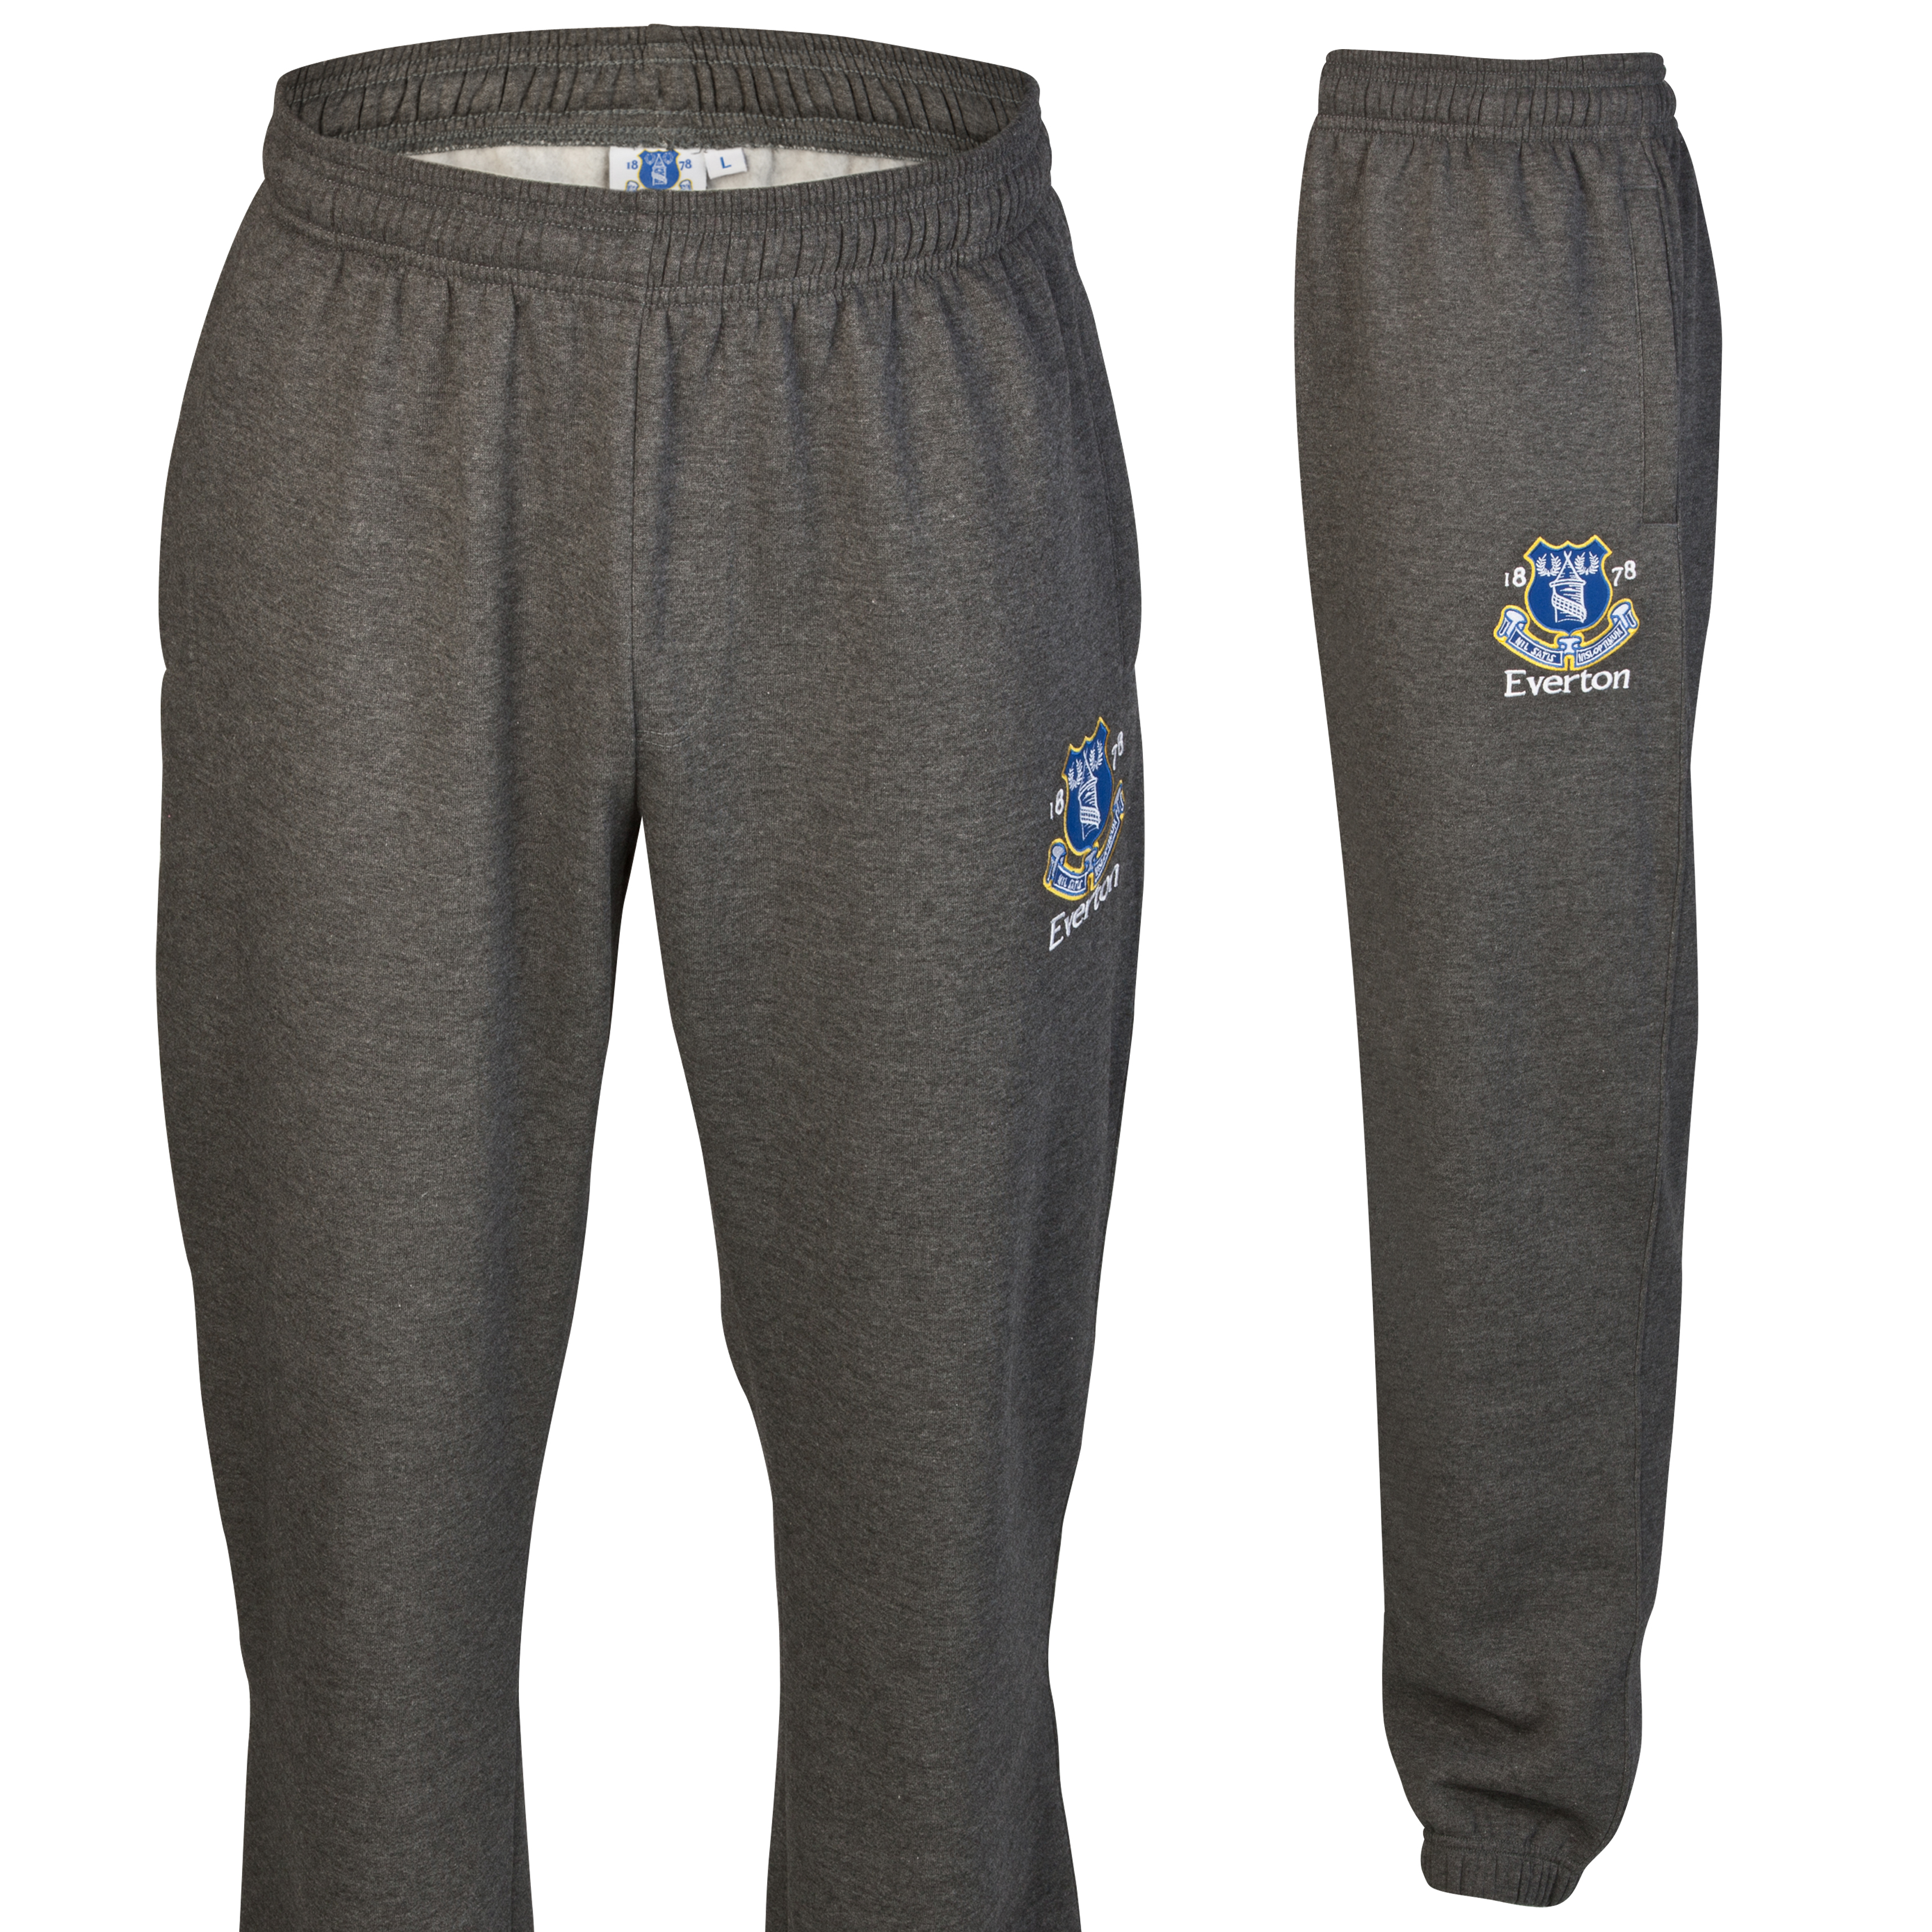 Everton Essential Jump Jog Pants - Charcoal Marl - Older Boys